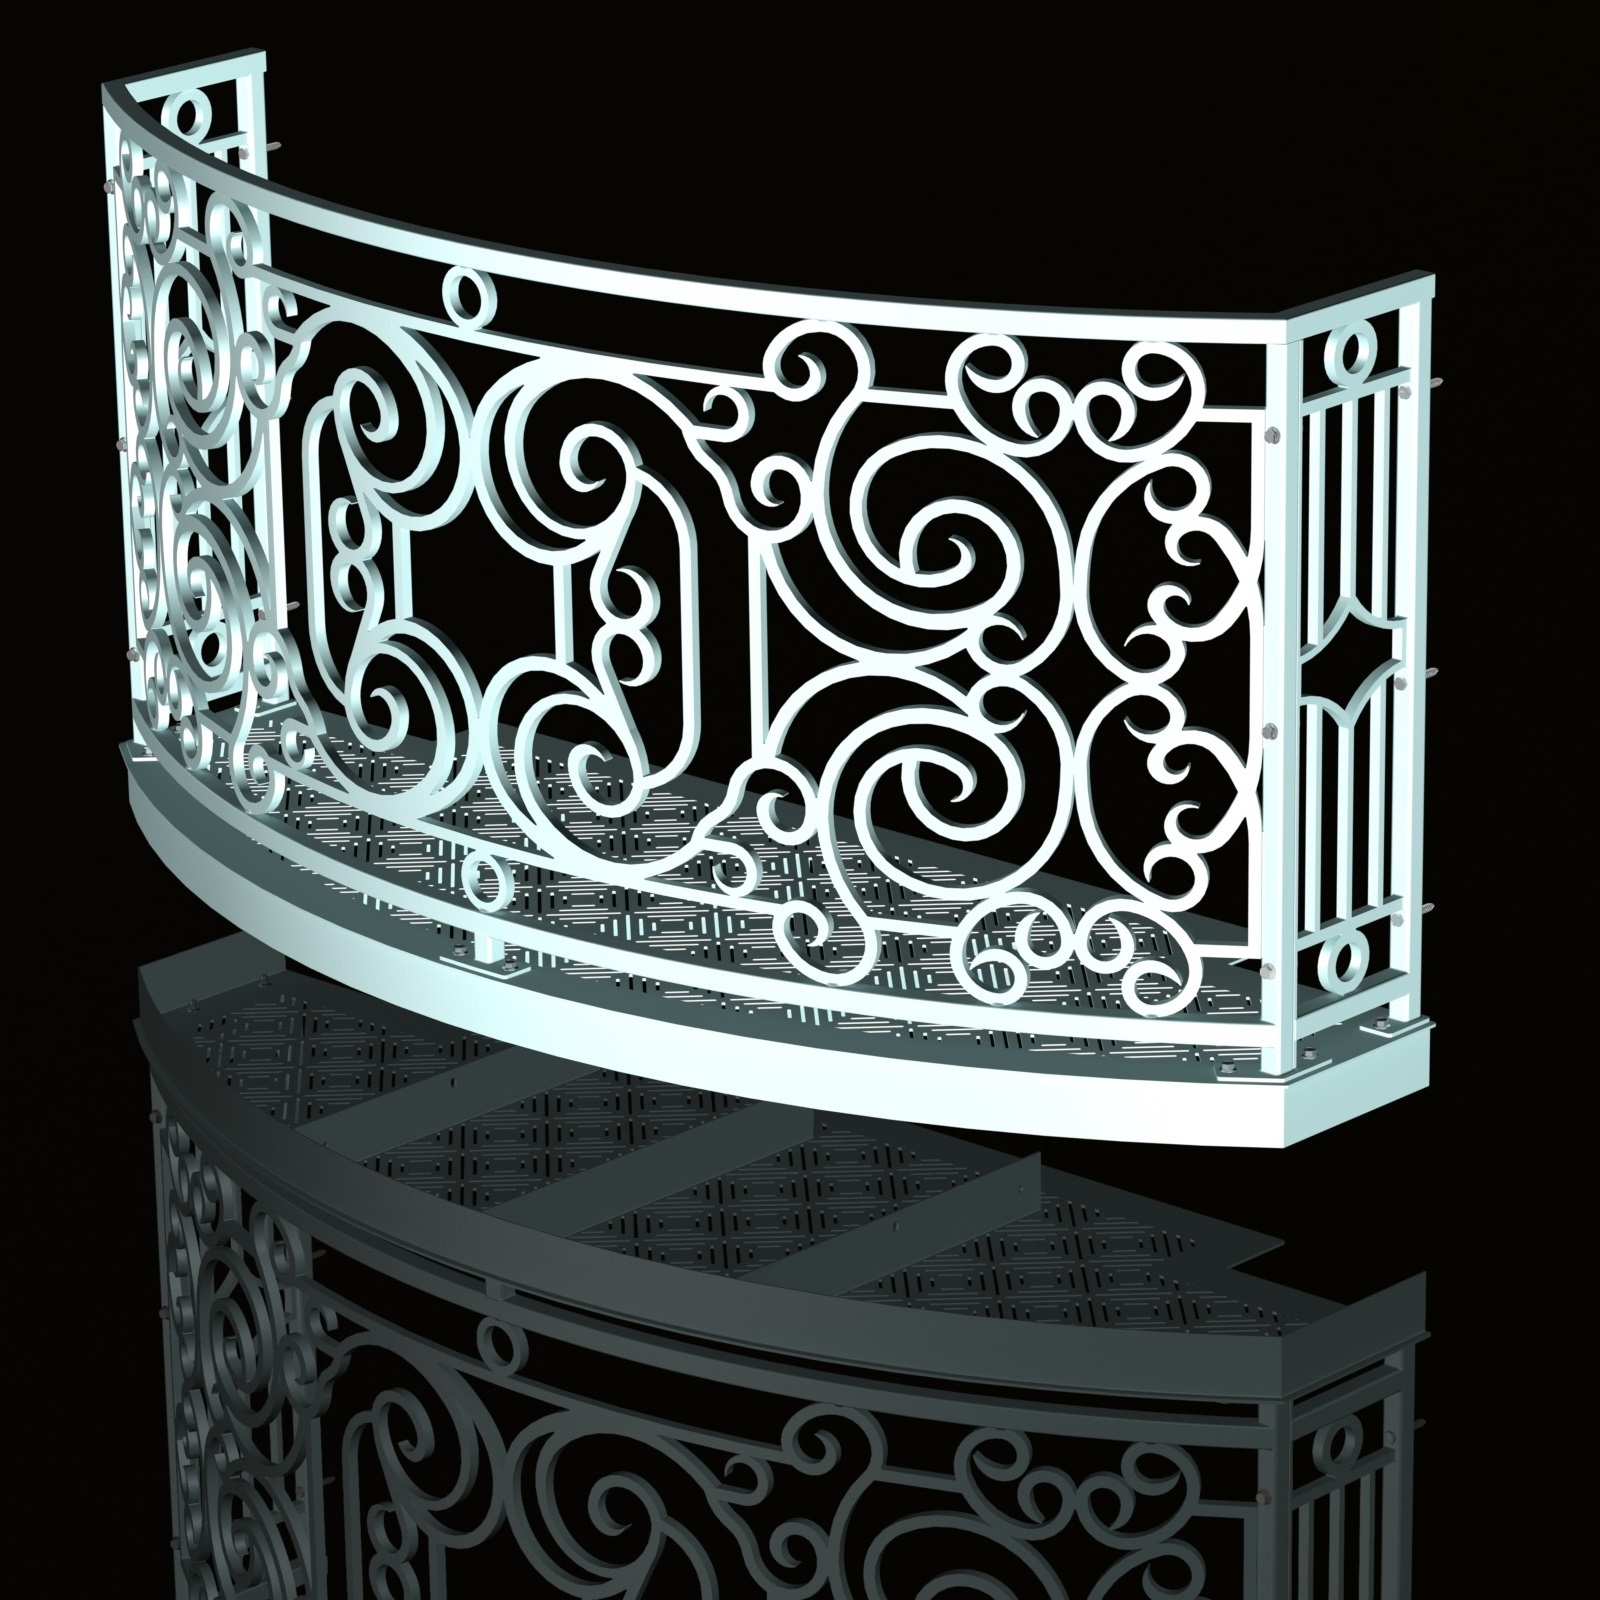 Balcony Render 7 - Curved Wrought Iron Look with Grate Deck - Pitch Black background, Reflection, Hardware - Cropped